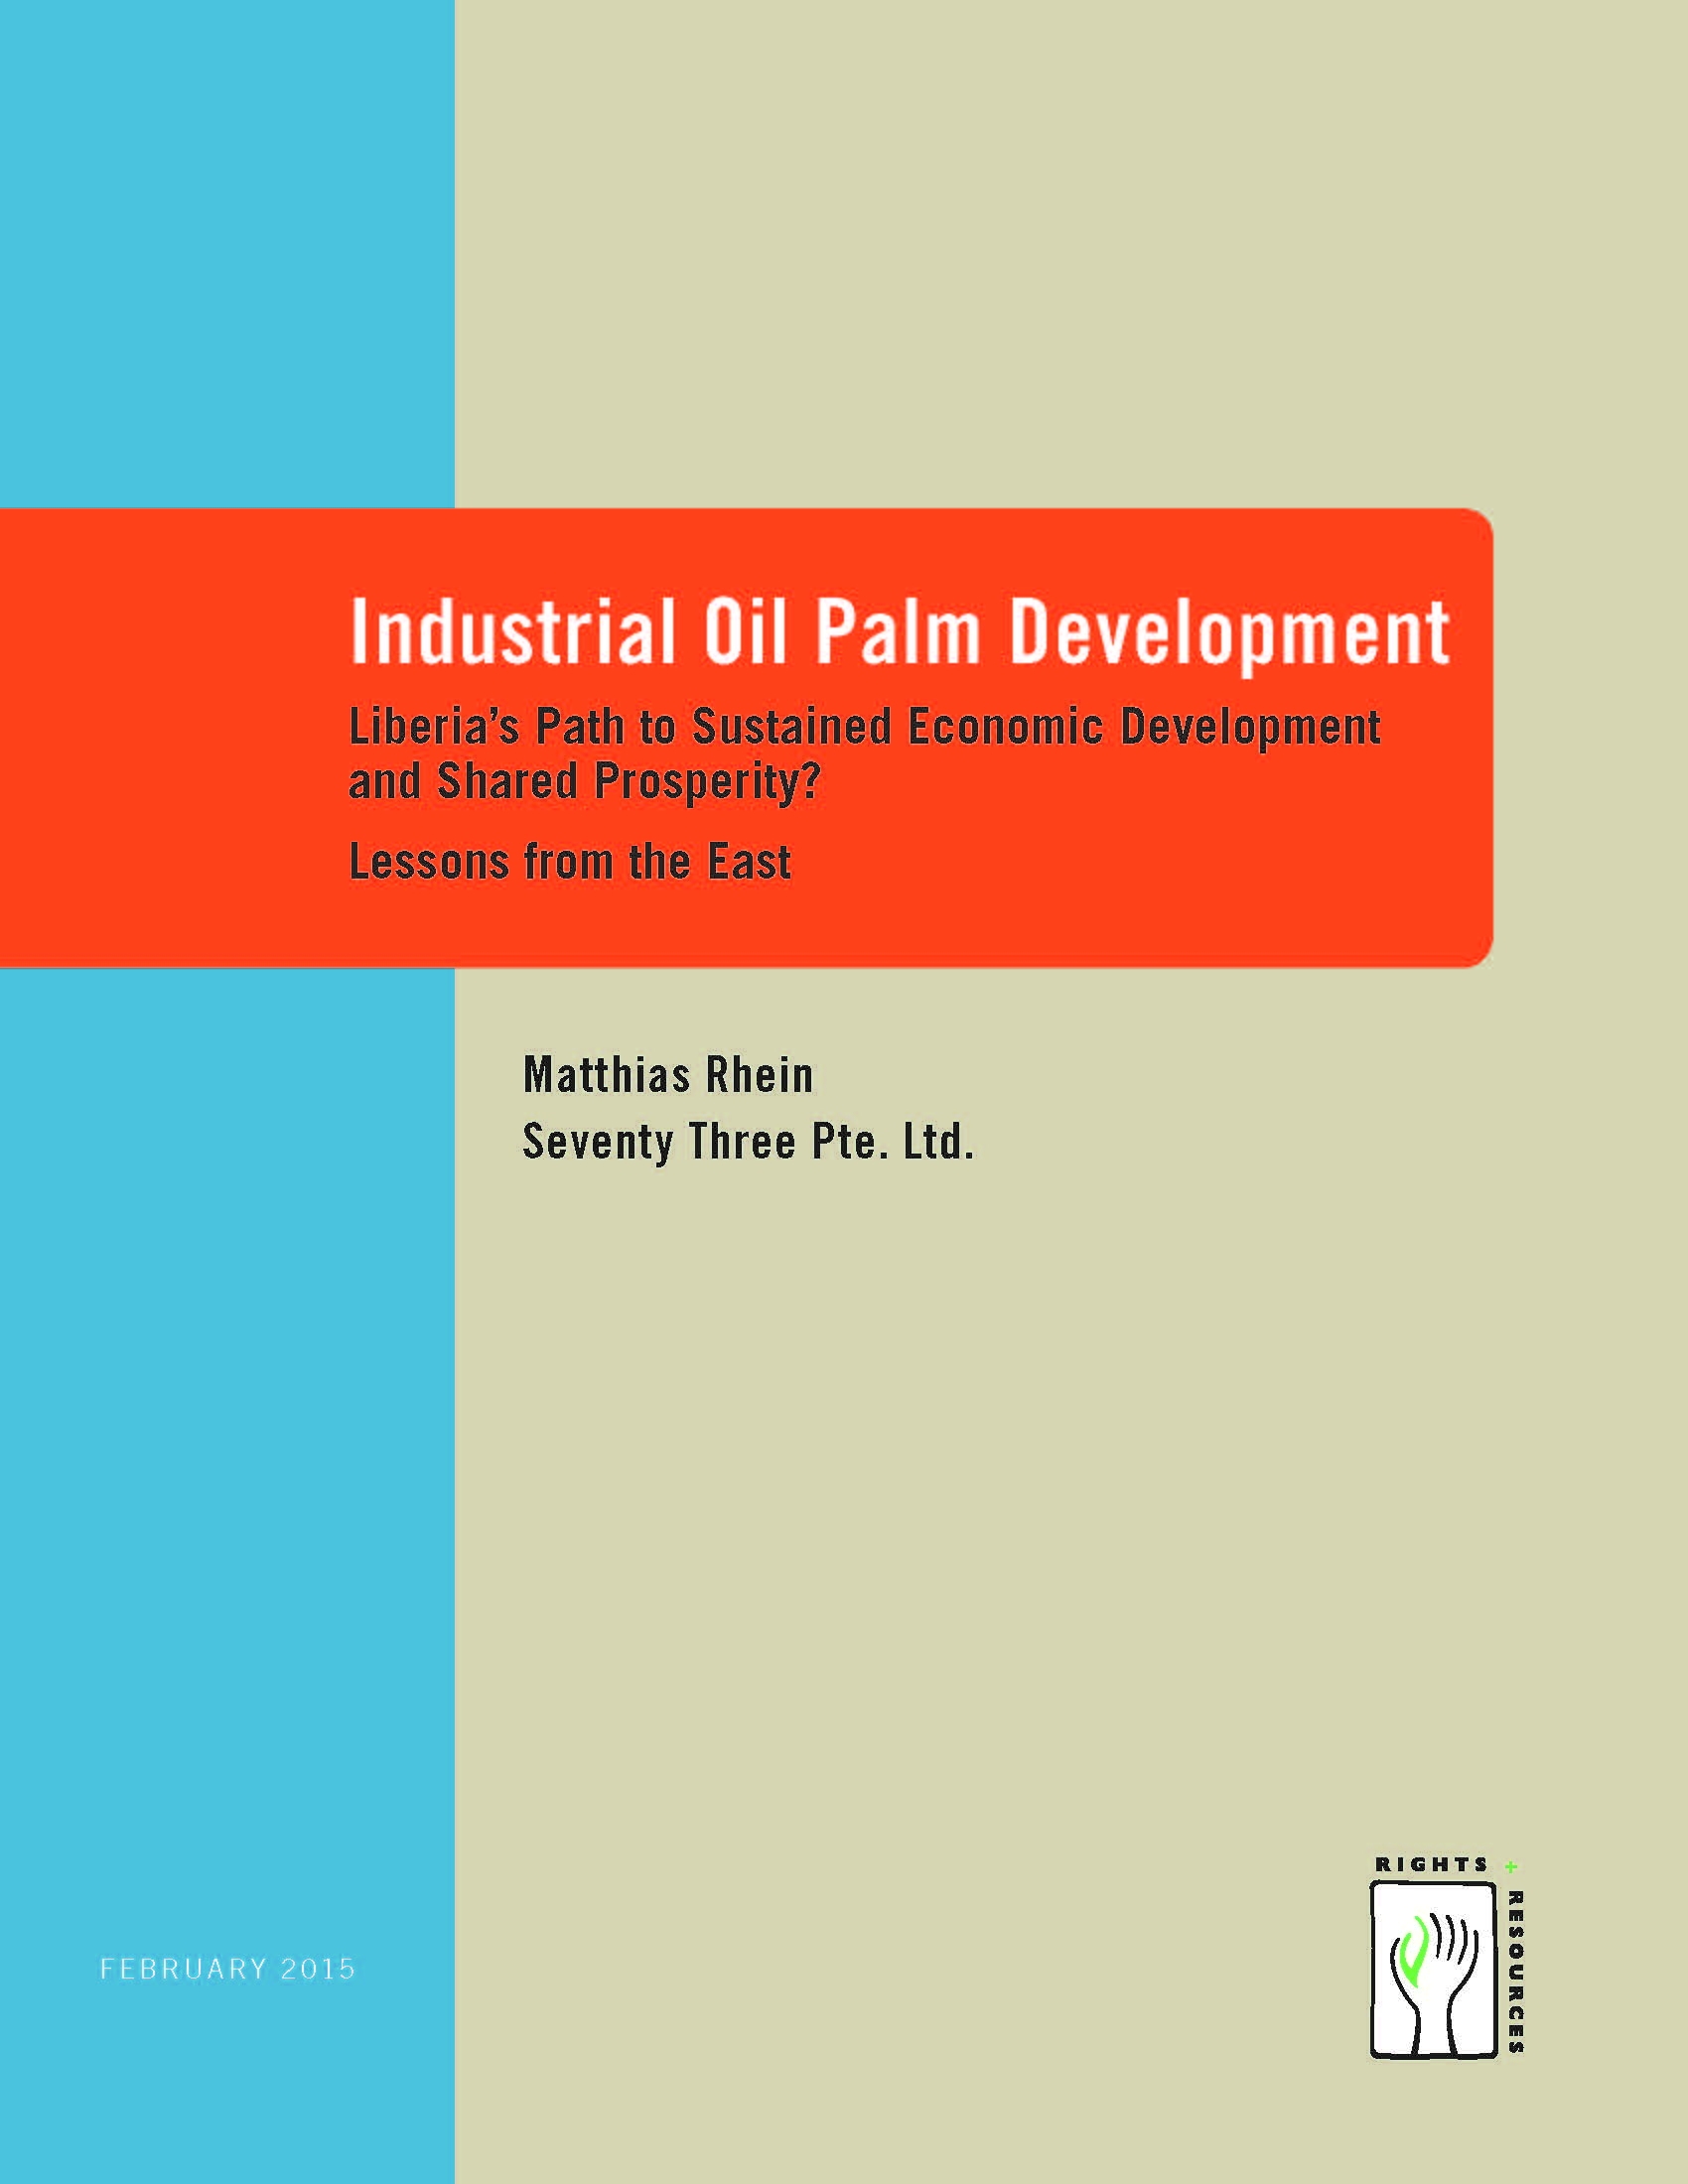 Industrial Oil Palm Development Liberia's Path to Sustained Economic Development and Shared Prosperity? Lessons from the East